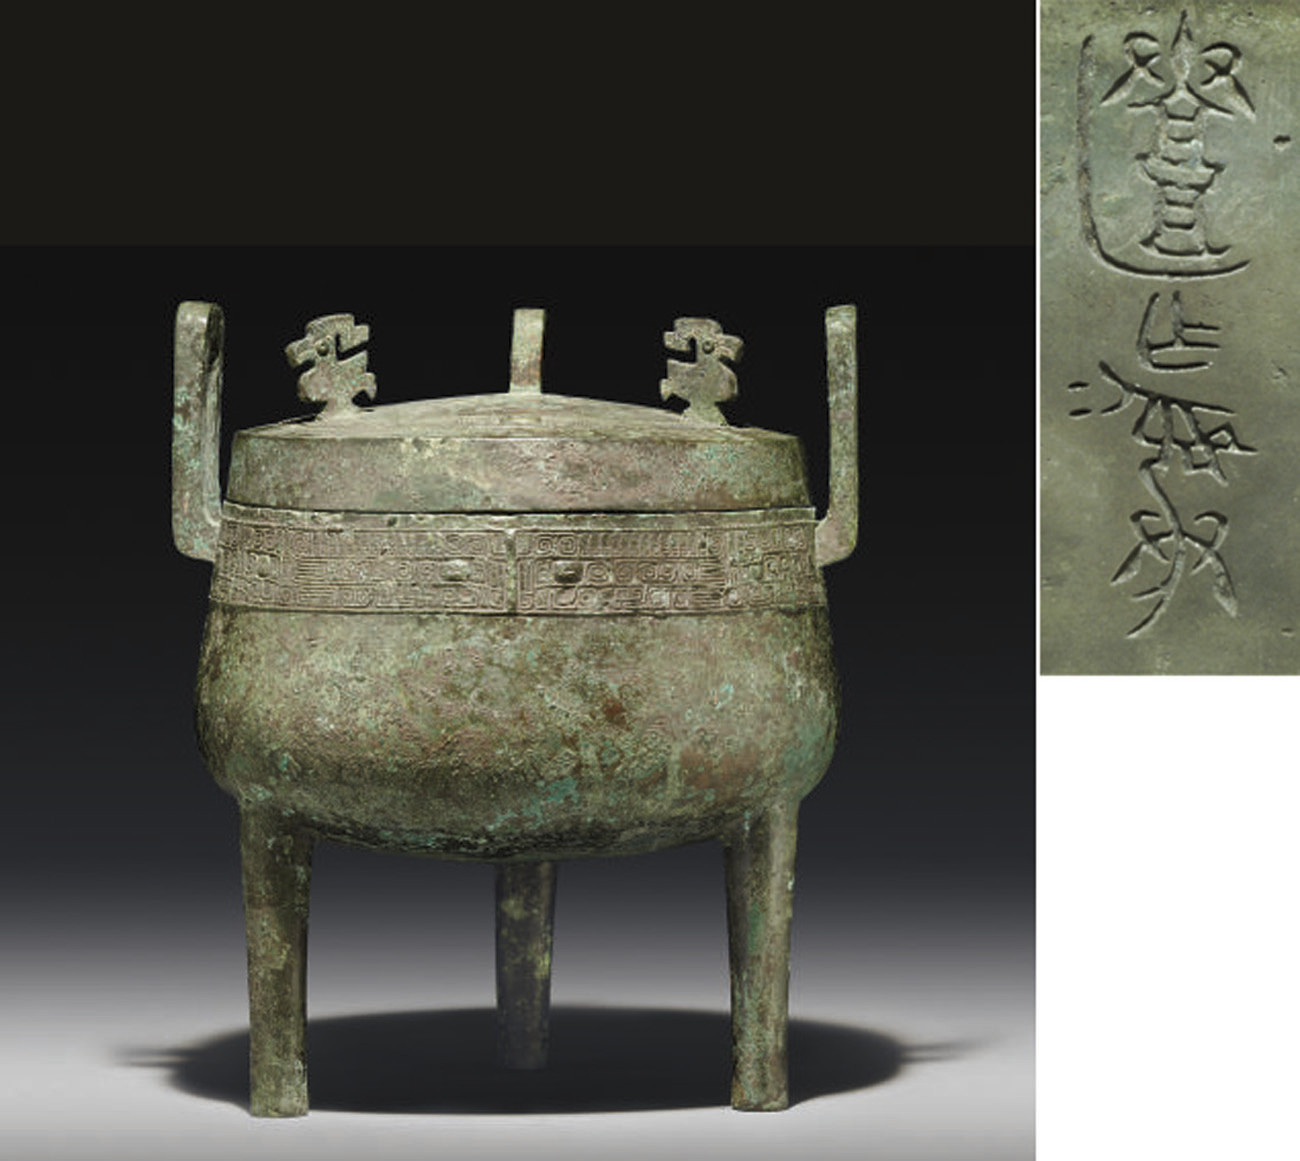 AN UNUSUAL BRONZE RITUAL TRIPO